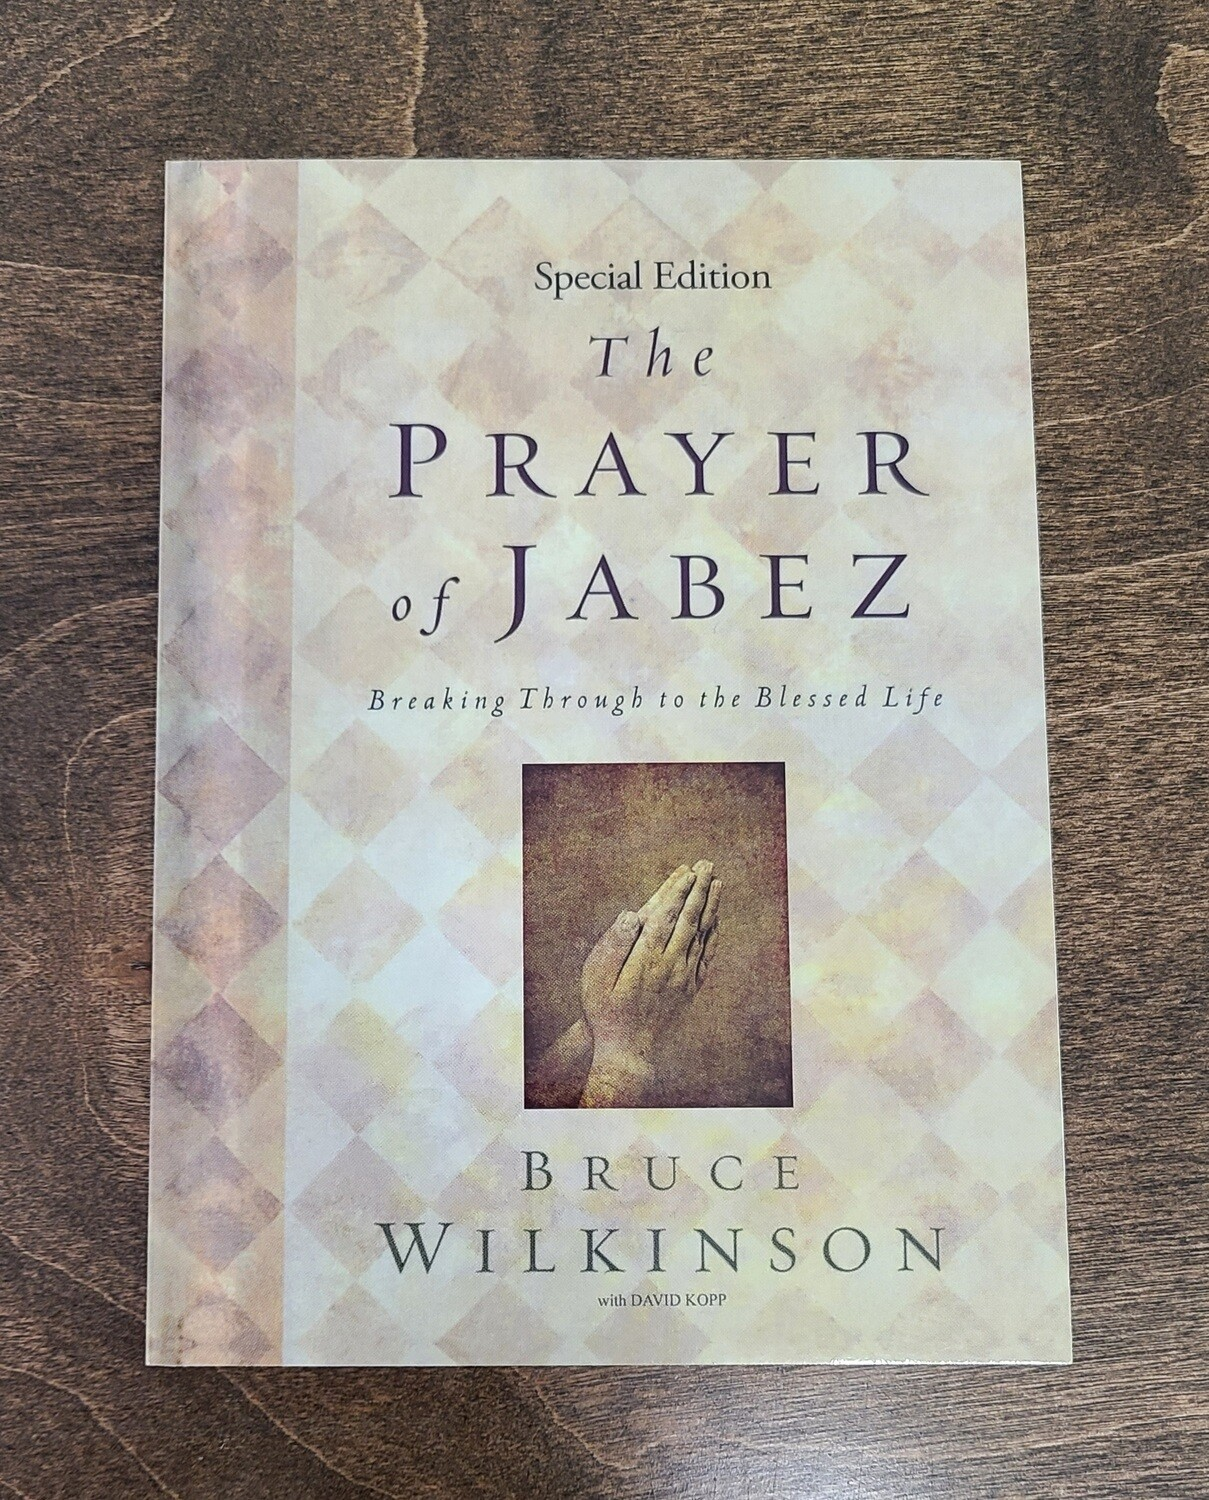 The Prayer of Jabez by Bruce Wilkinson - PB